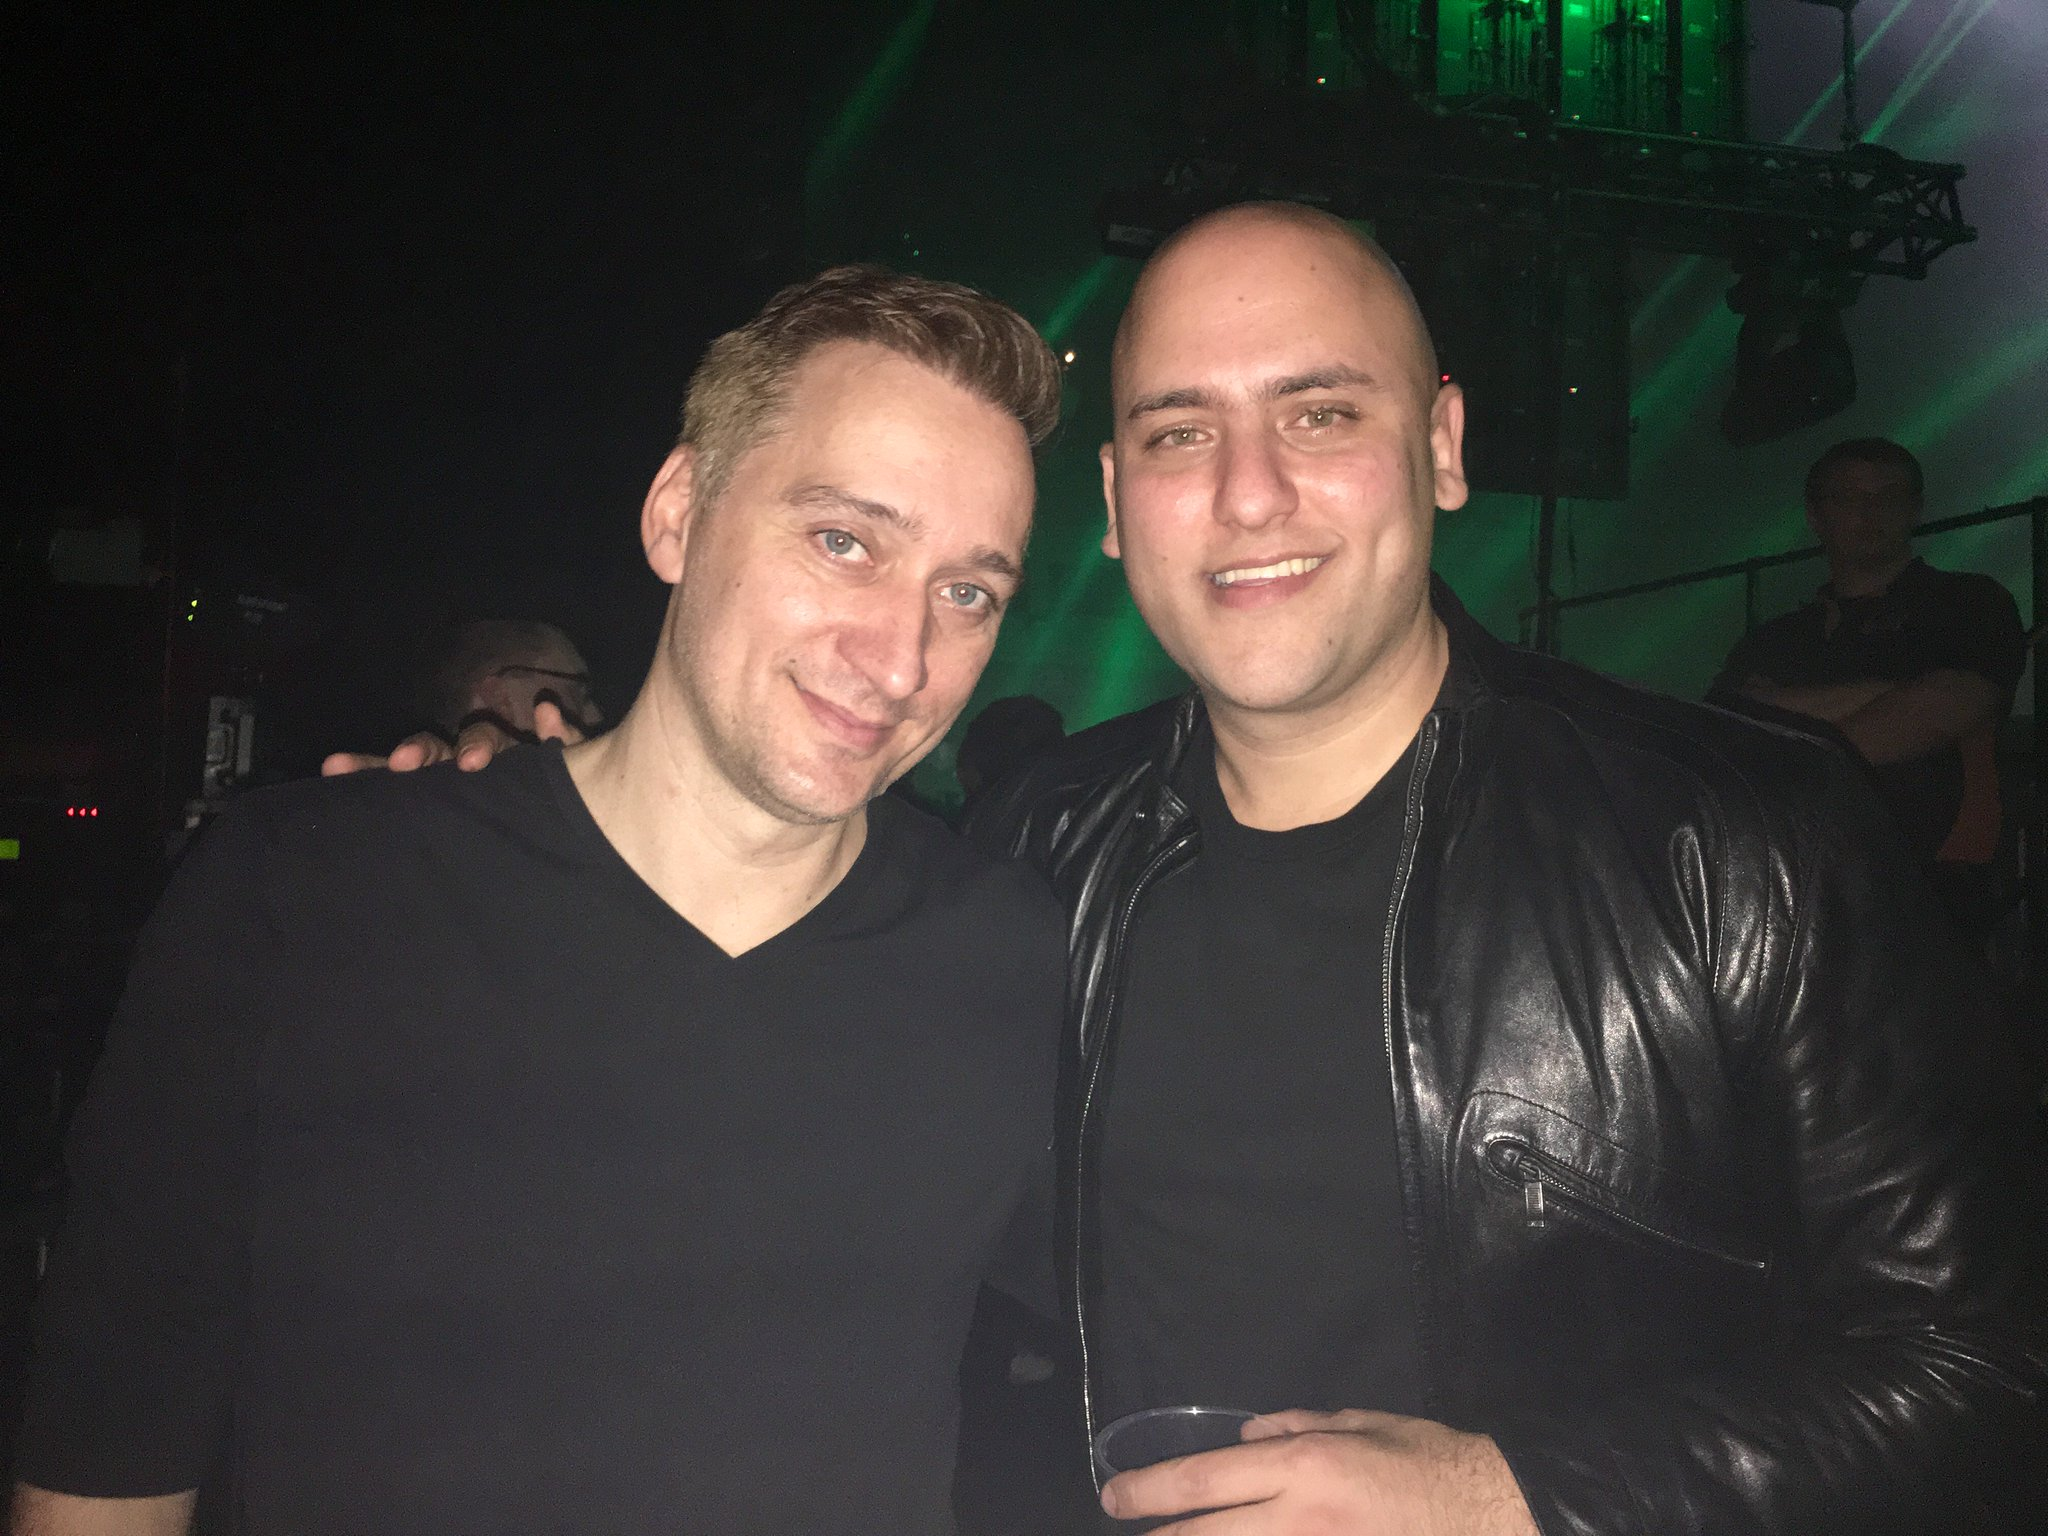 Trance Family! Looking forward to see you later at @CreamIbiza, @alyandfila https://t.co/Y368Ygn75A